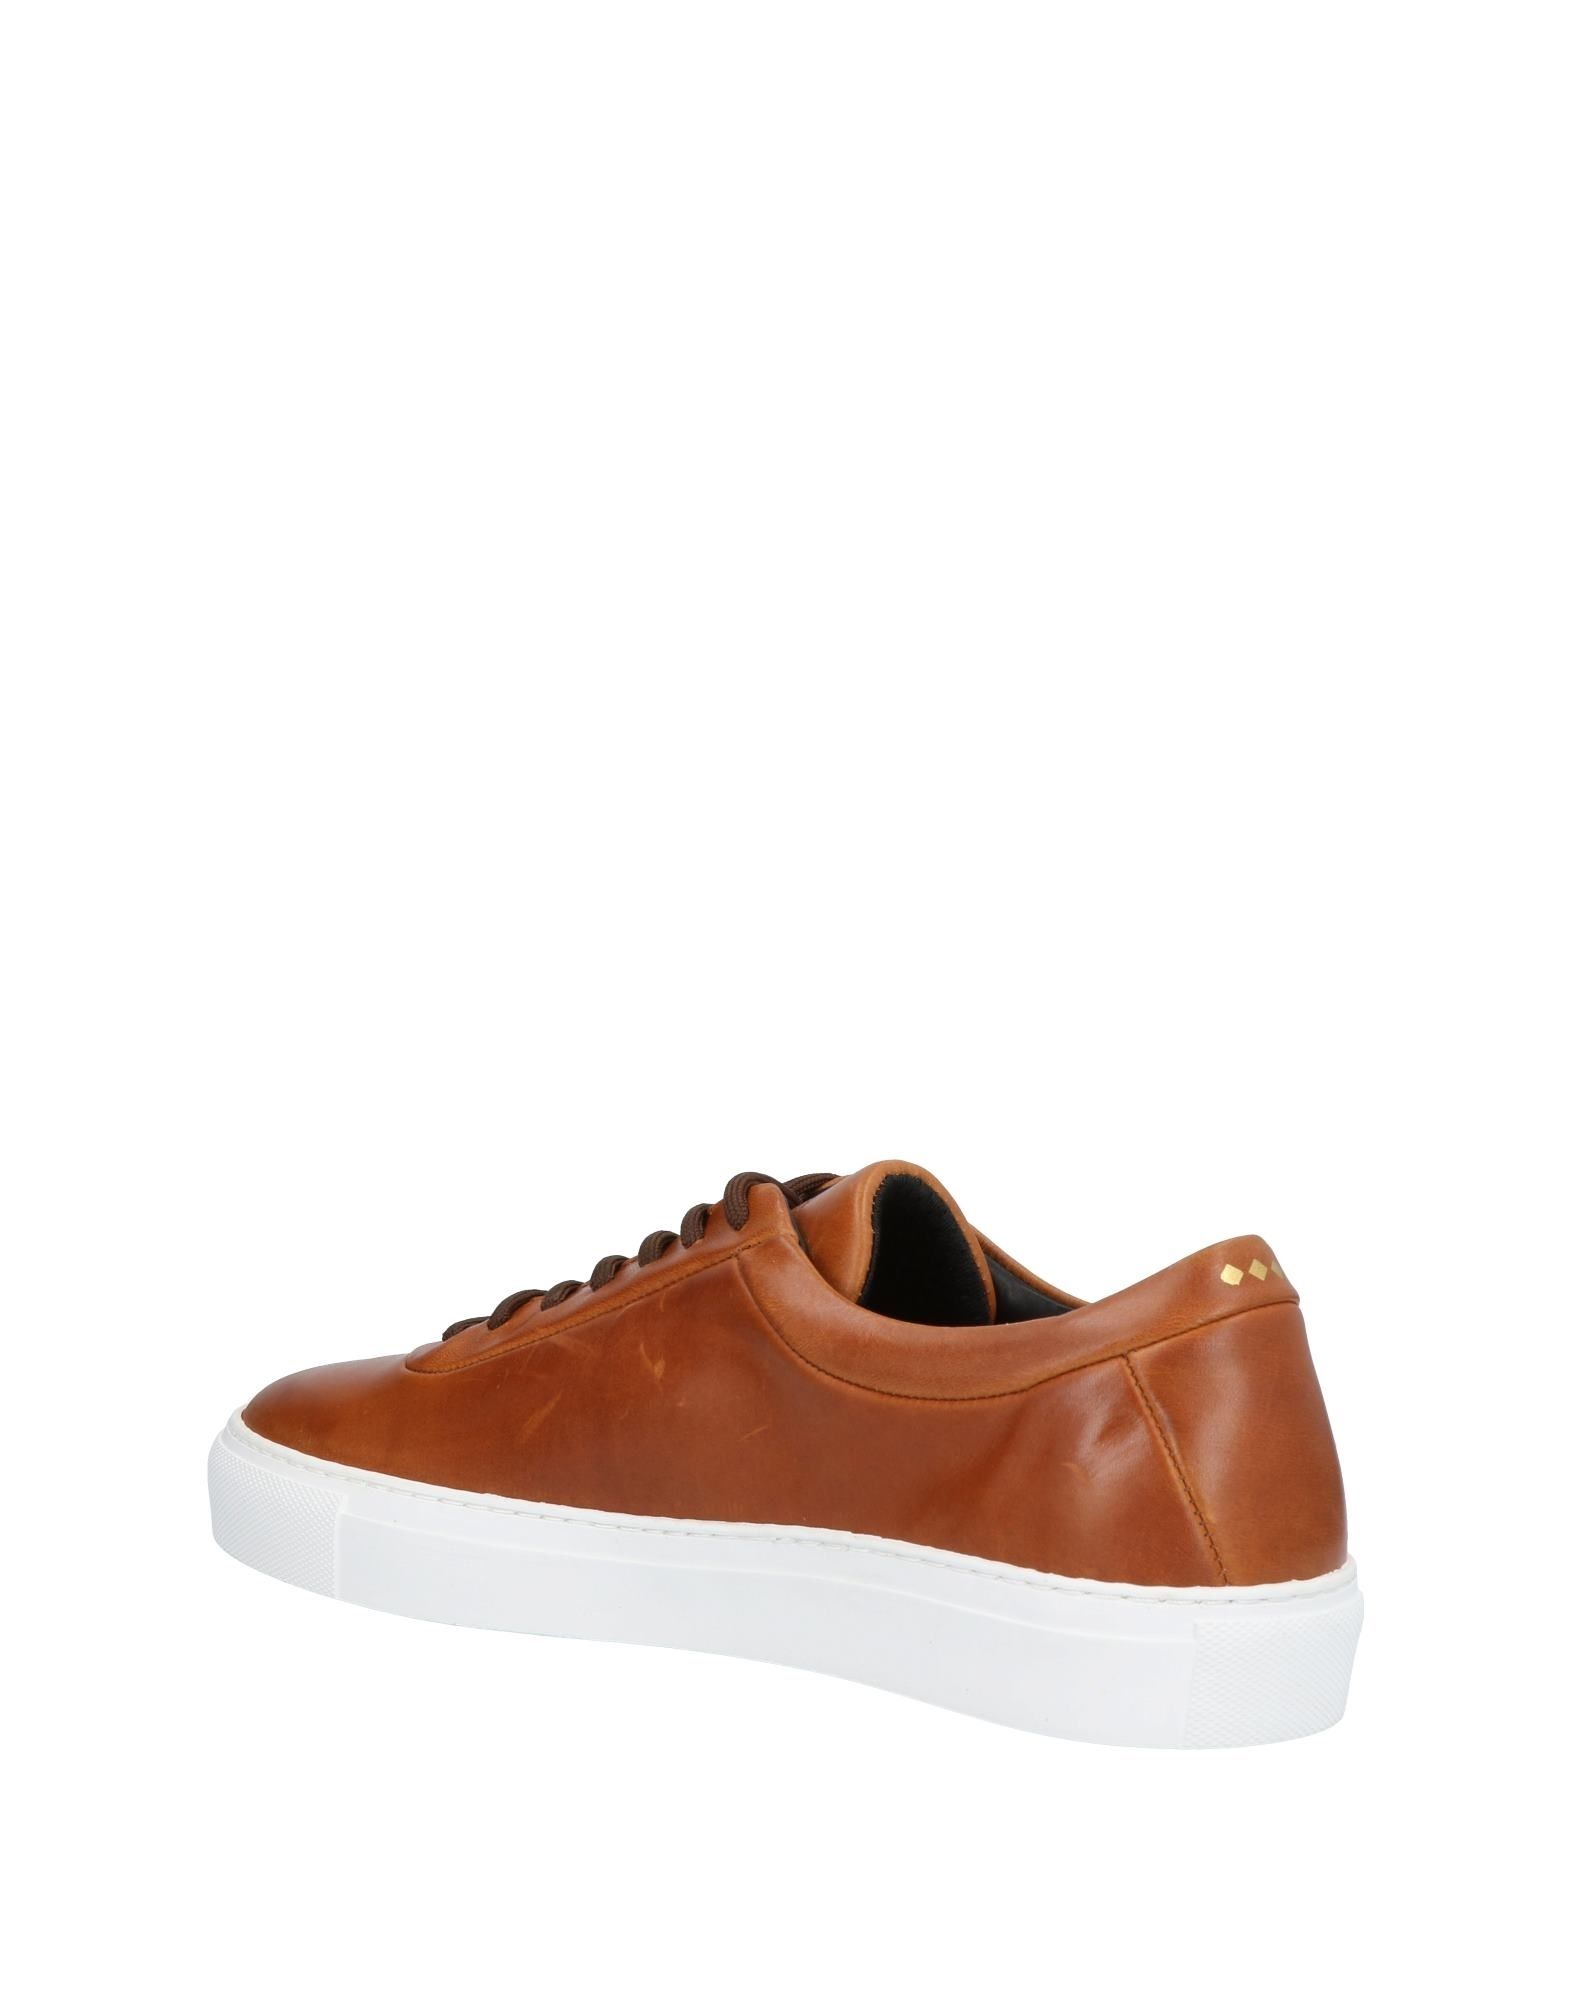 Sneakers Uomo Royal Republiq Uomo Sneakers - 11417340HO a272f9